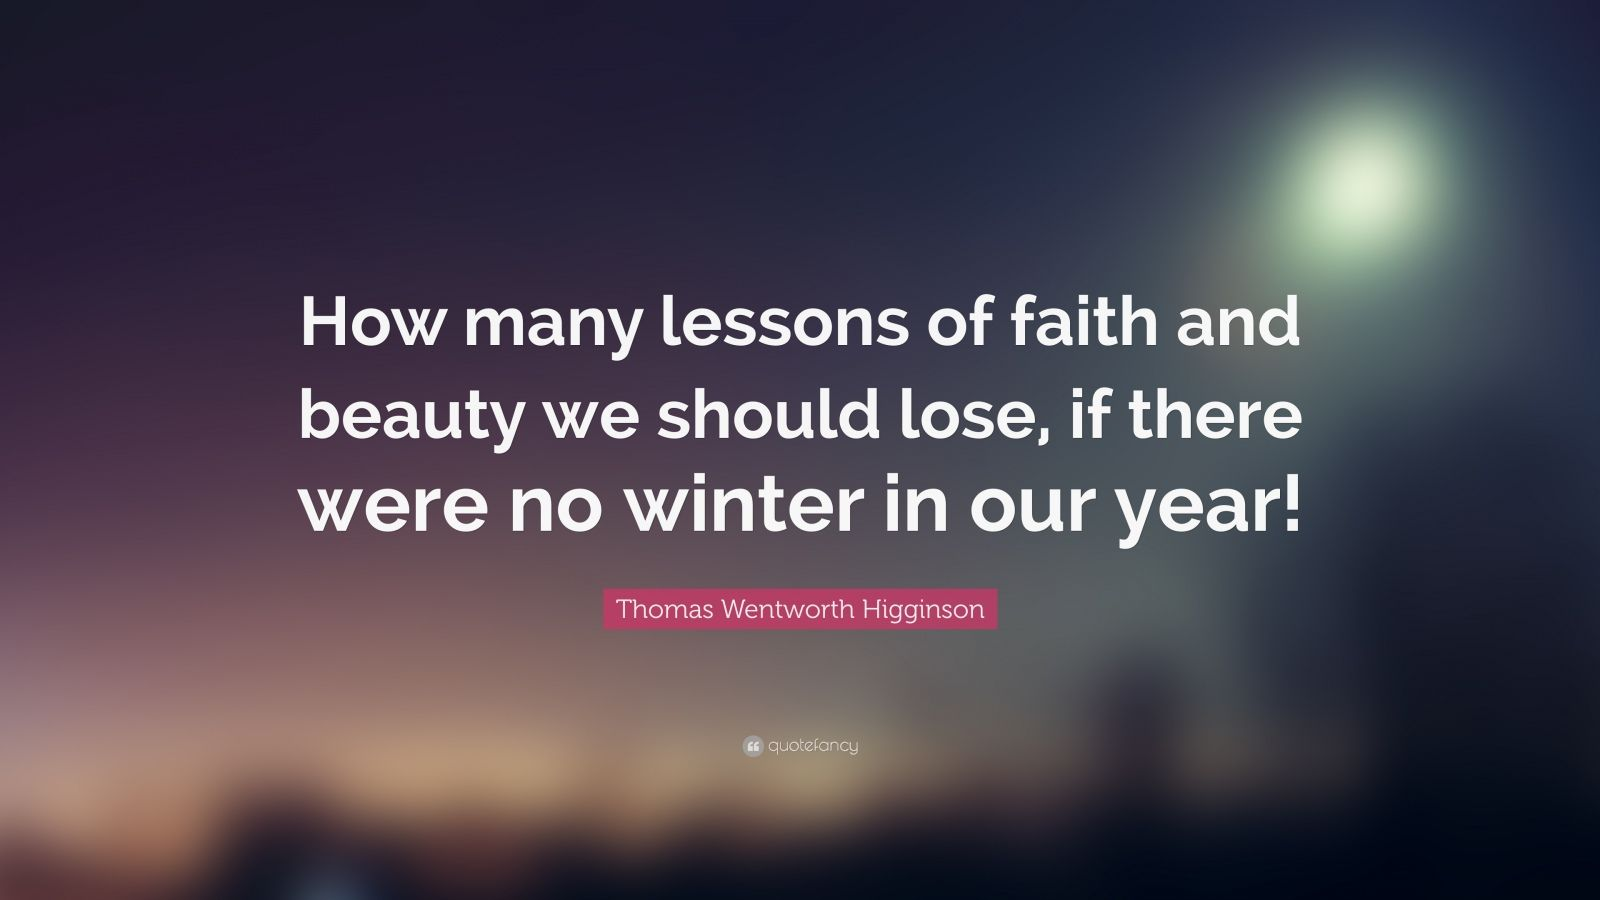 """Thomas Wentworth Higginson Quote: """"How many lessons of faith and beauty we should lose, if there were no winter in our year!"""""""